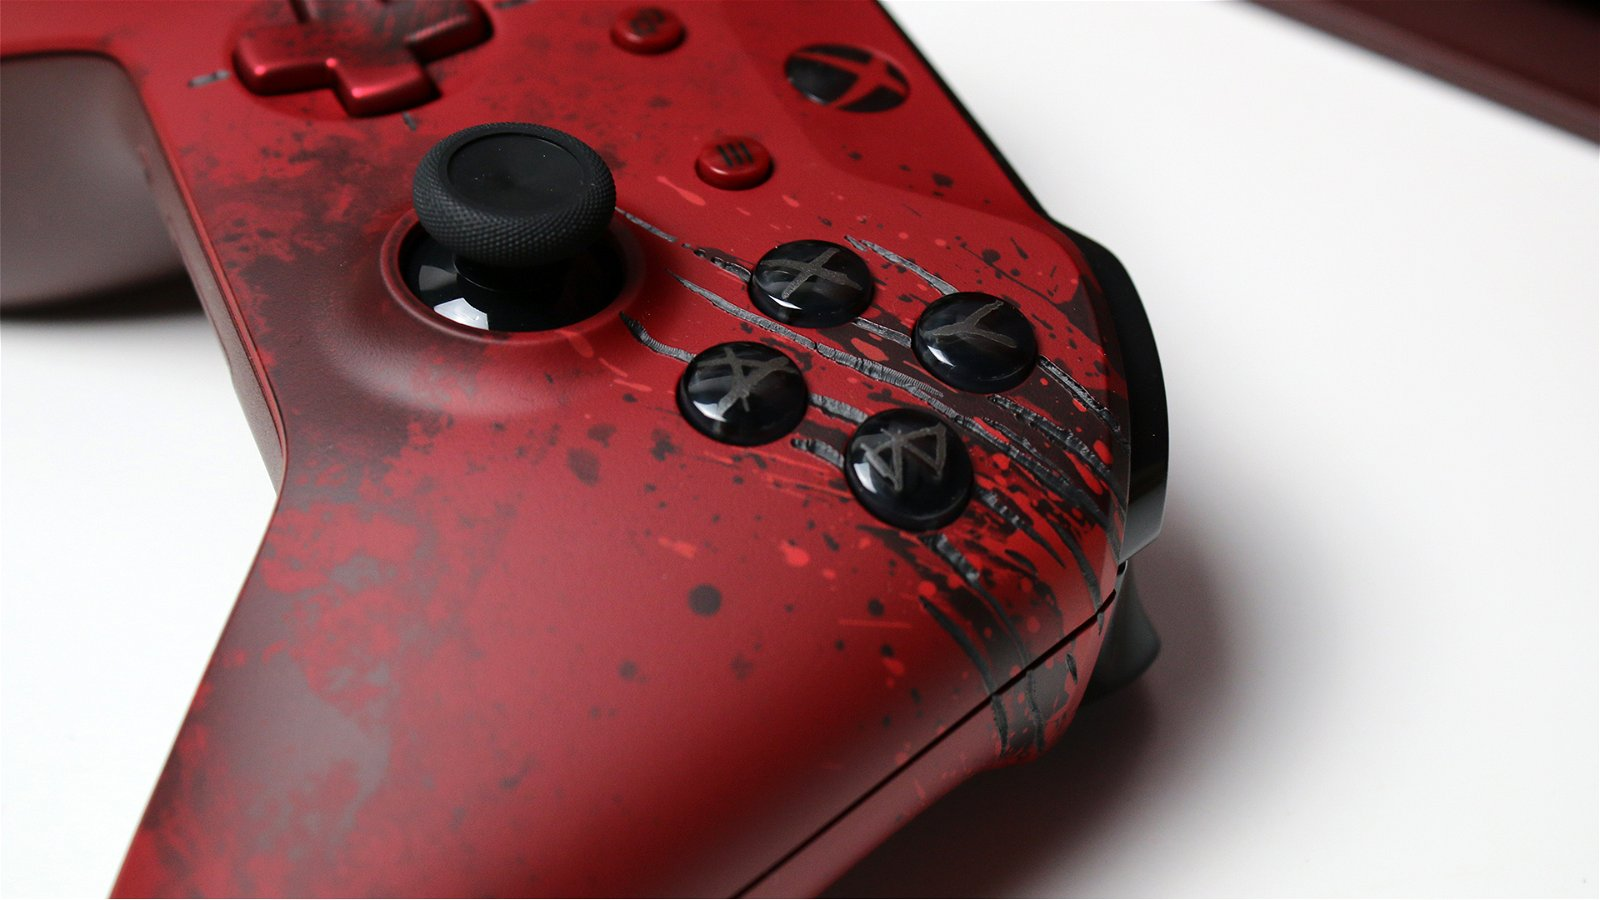 Unboxing the Gears of War 4 Xbox One S 10